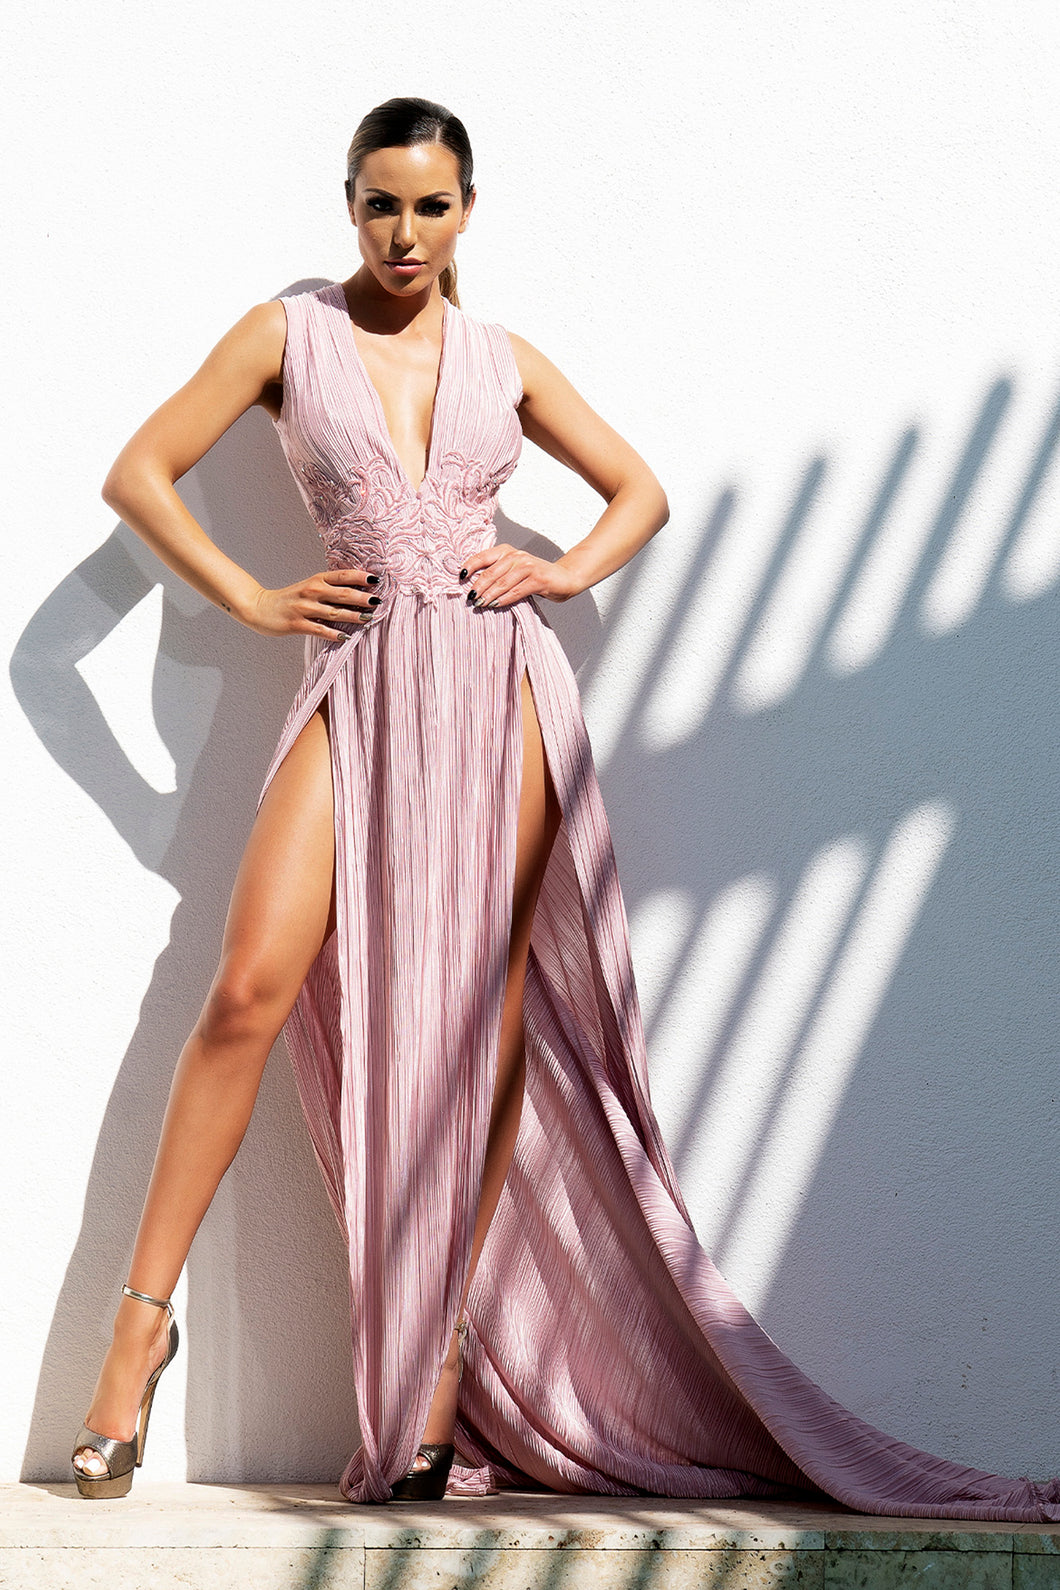 Lulu Wrinkle Pink Long Dress - Miami Gowns Design - BACCIO Couture